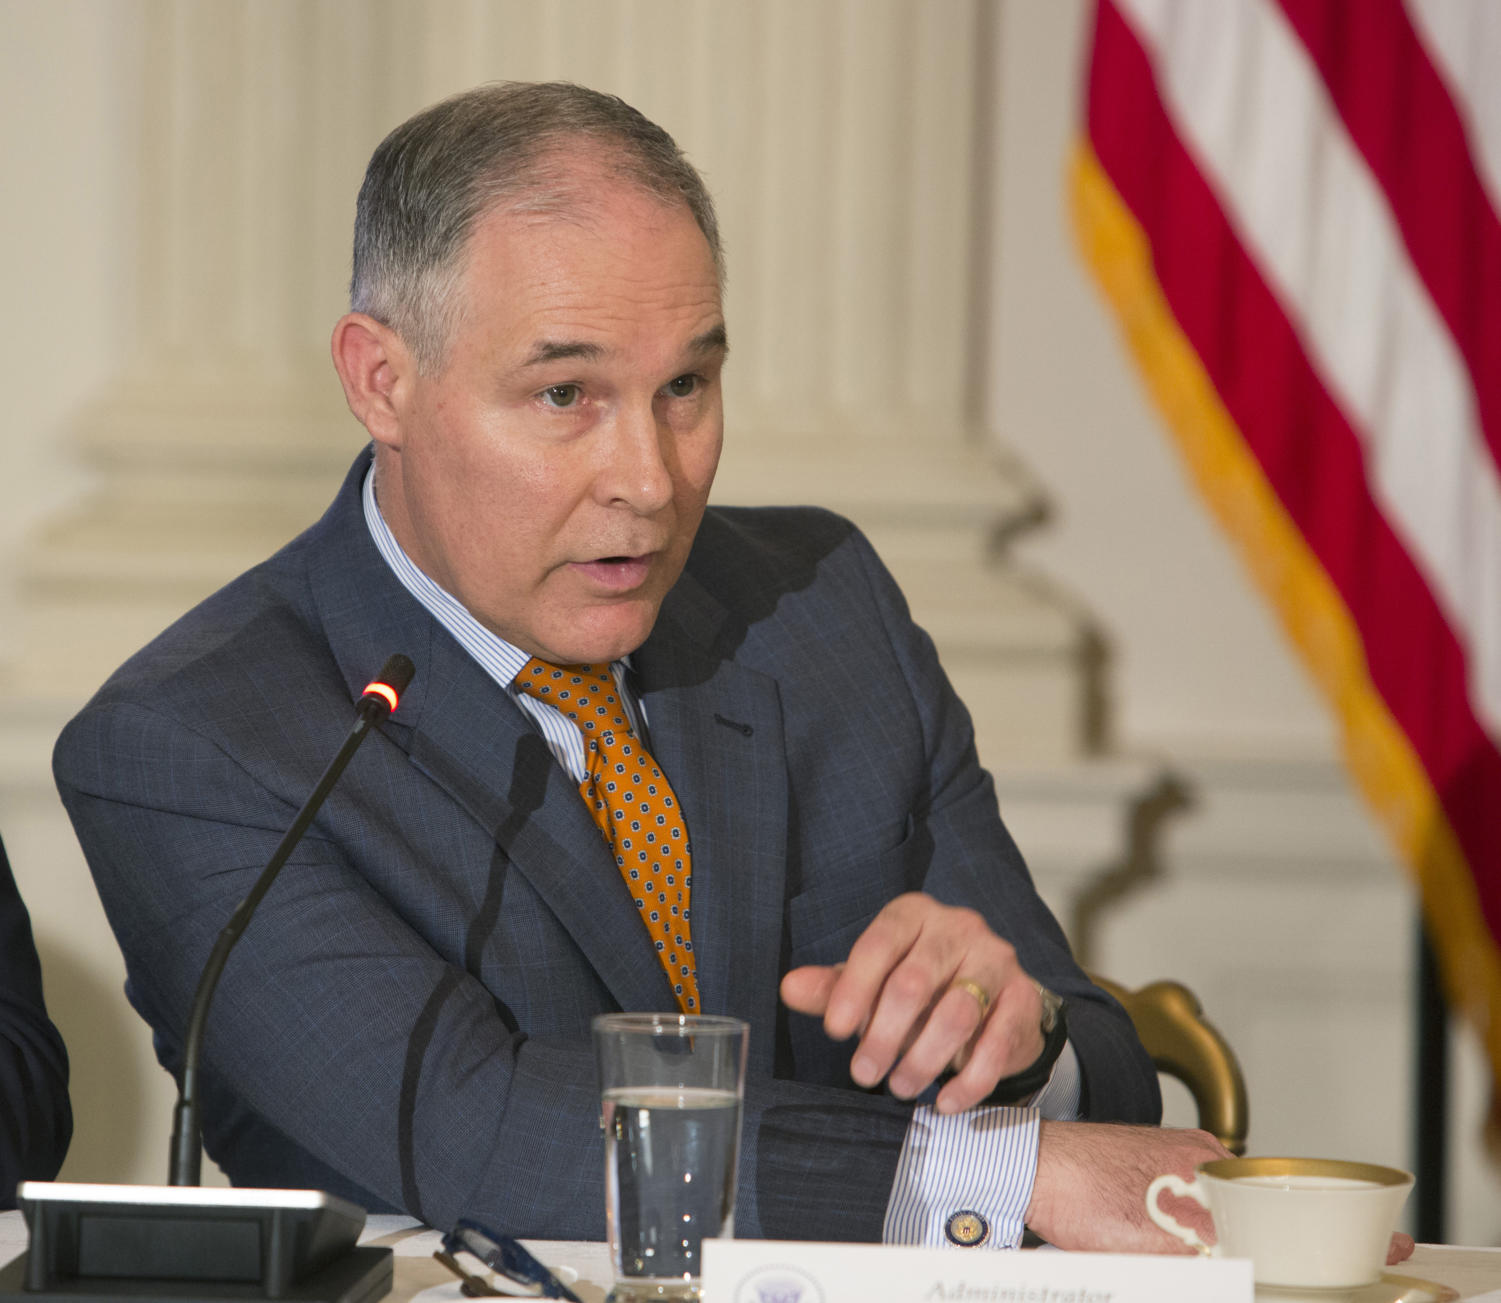 Former Environmental Protection Agency Administrator Scott Pruitt participates in a meeting with state and local officials regarding the Trump infrastructure plan on Feb. 12, 2018, at the White House in Washington, D.C. The EPA wants to quicken the pace of deregulations. (Chris Kleponis/CNP/Zuma Press/TNS)